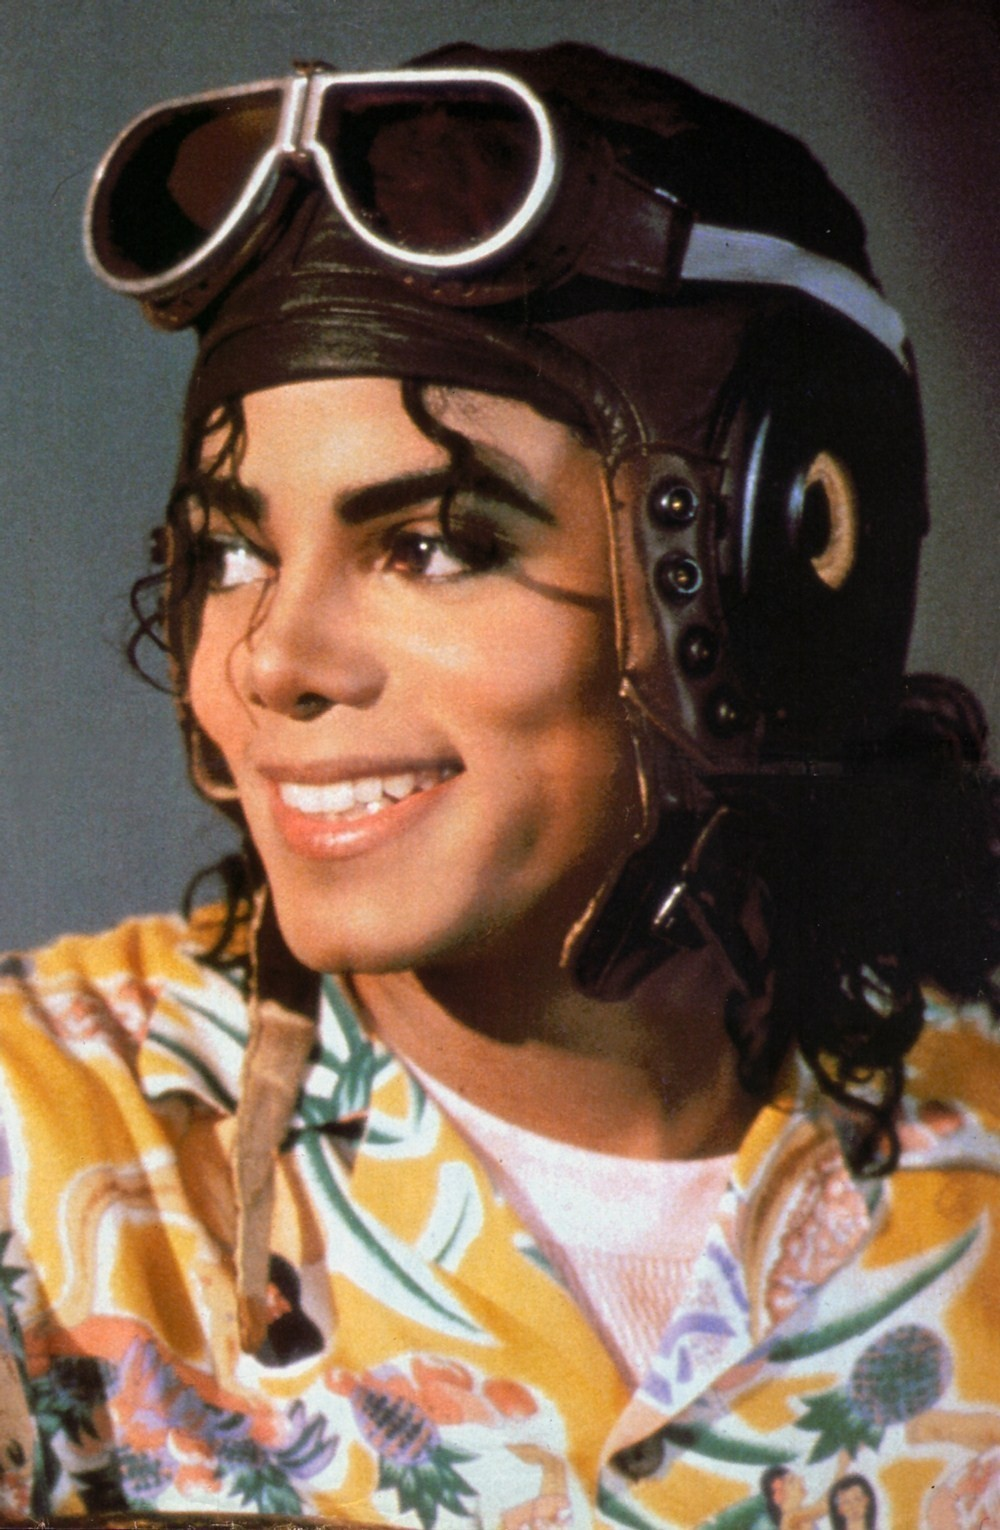 Leave-me-alone-michael-jackson-music-videos-9403034-1000-1530